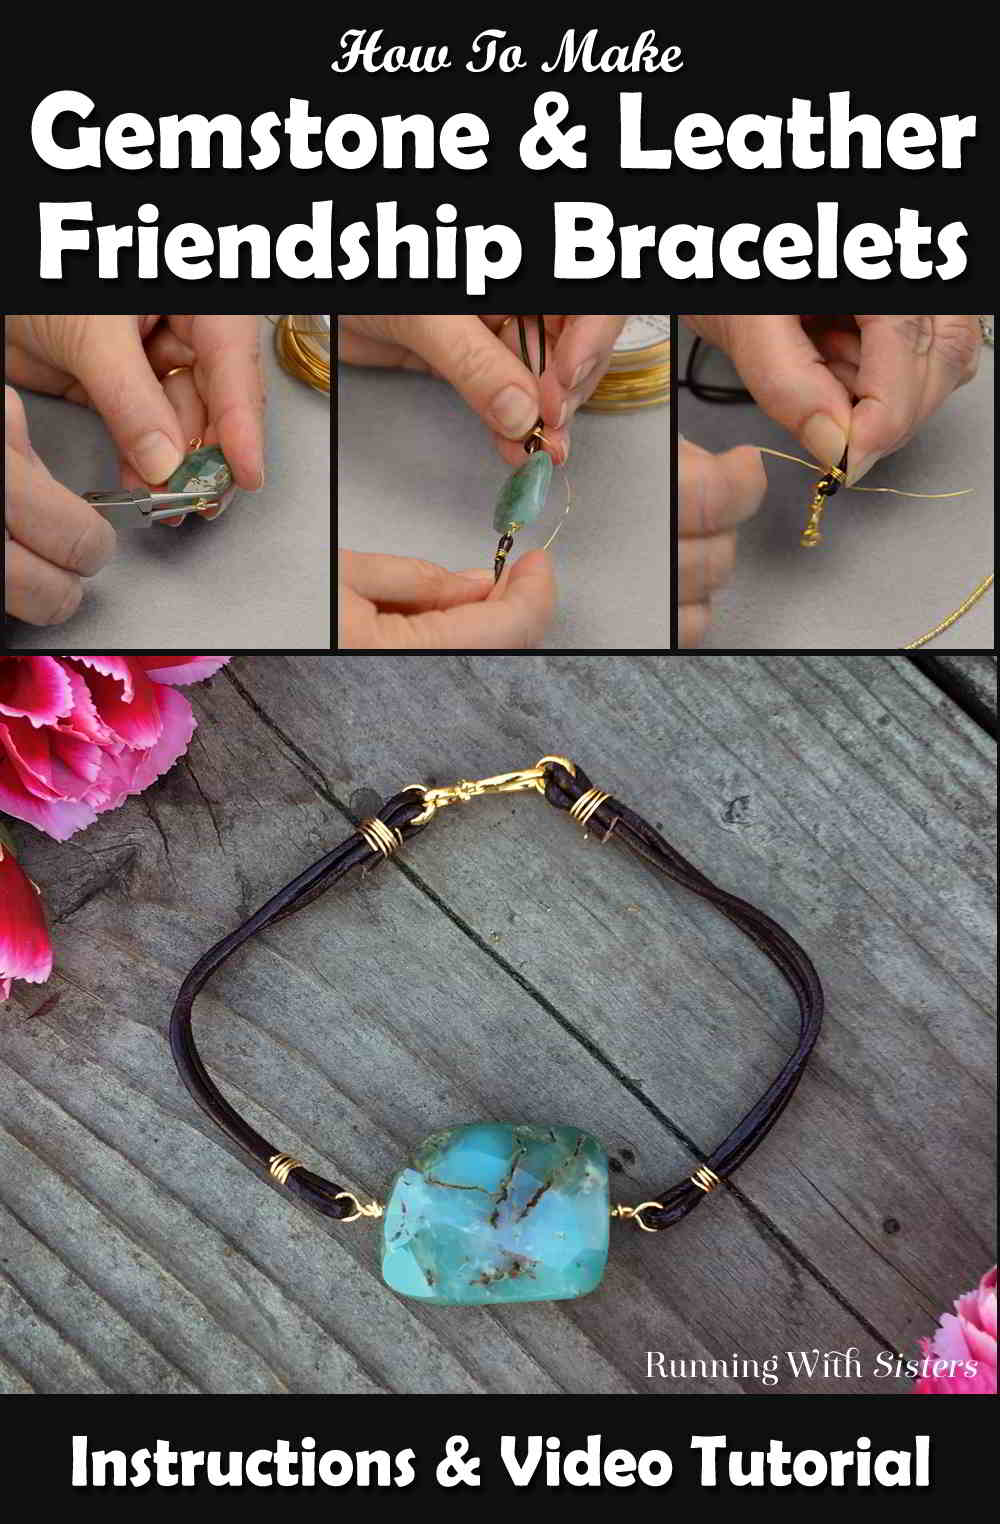 Make aGemstoneLeatherFriendship Bracelet for a friend and one for yourself too! We'll show you how in this step by step video. Great for a beginner!